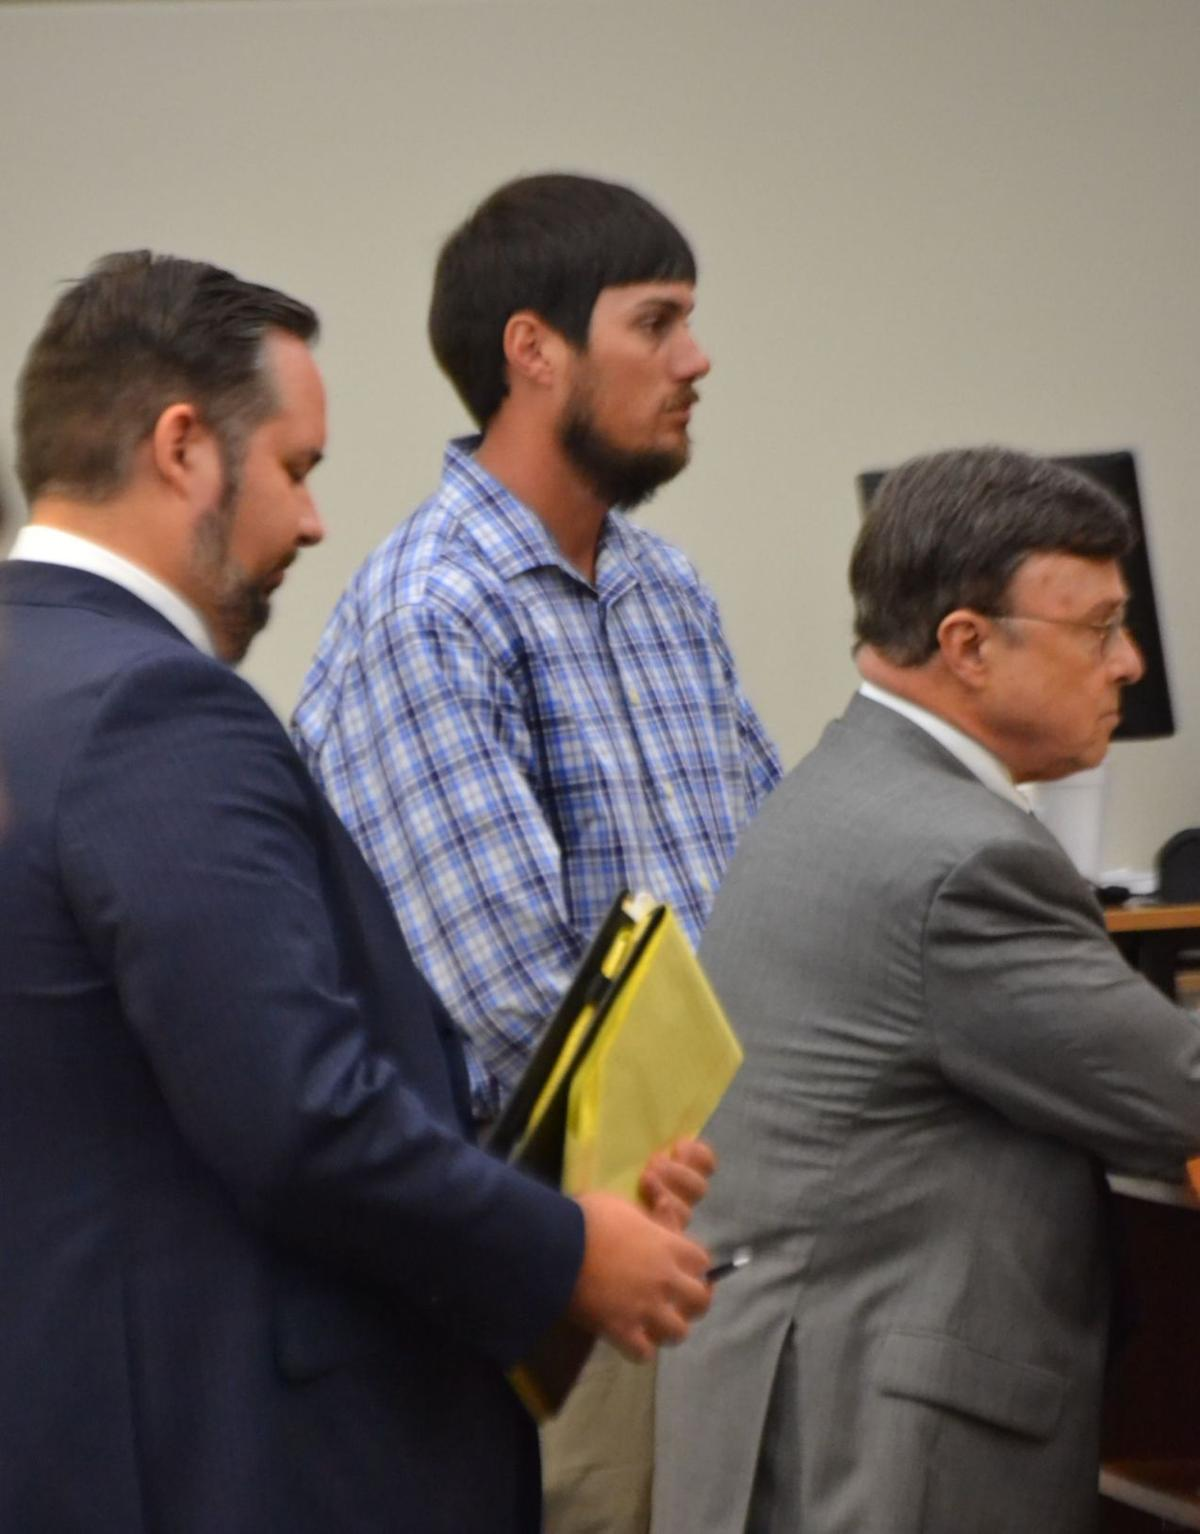 Zachary Lehman with his attorneys